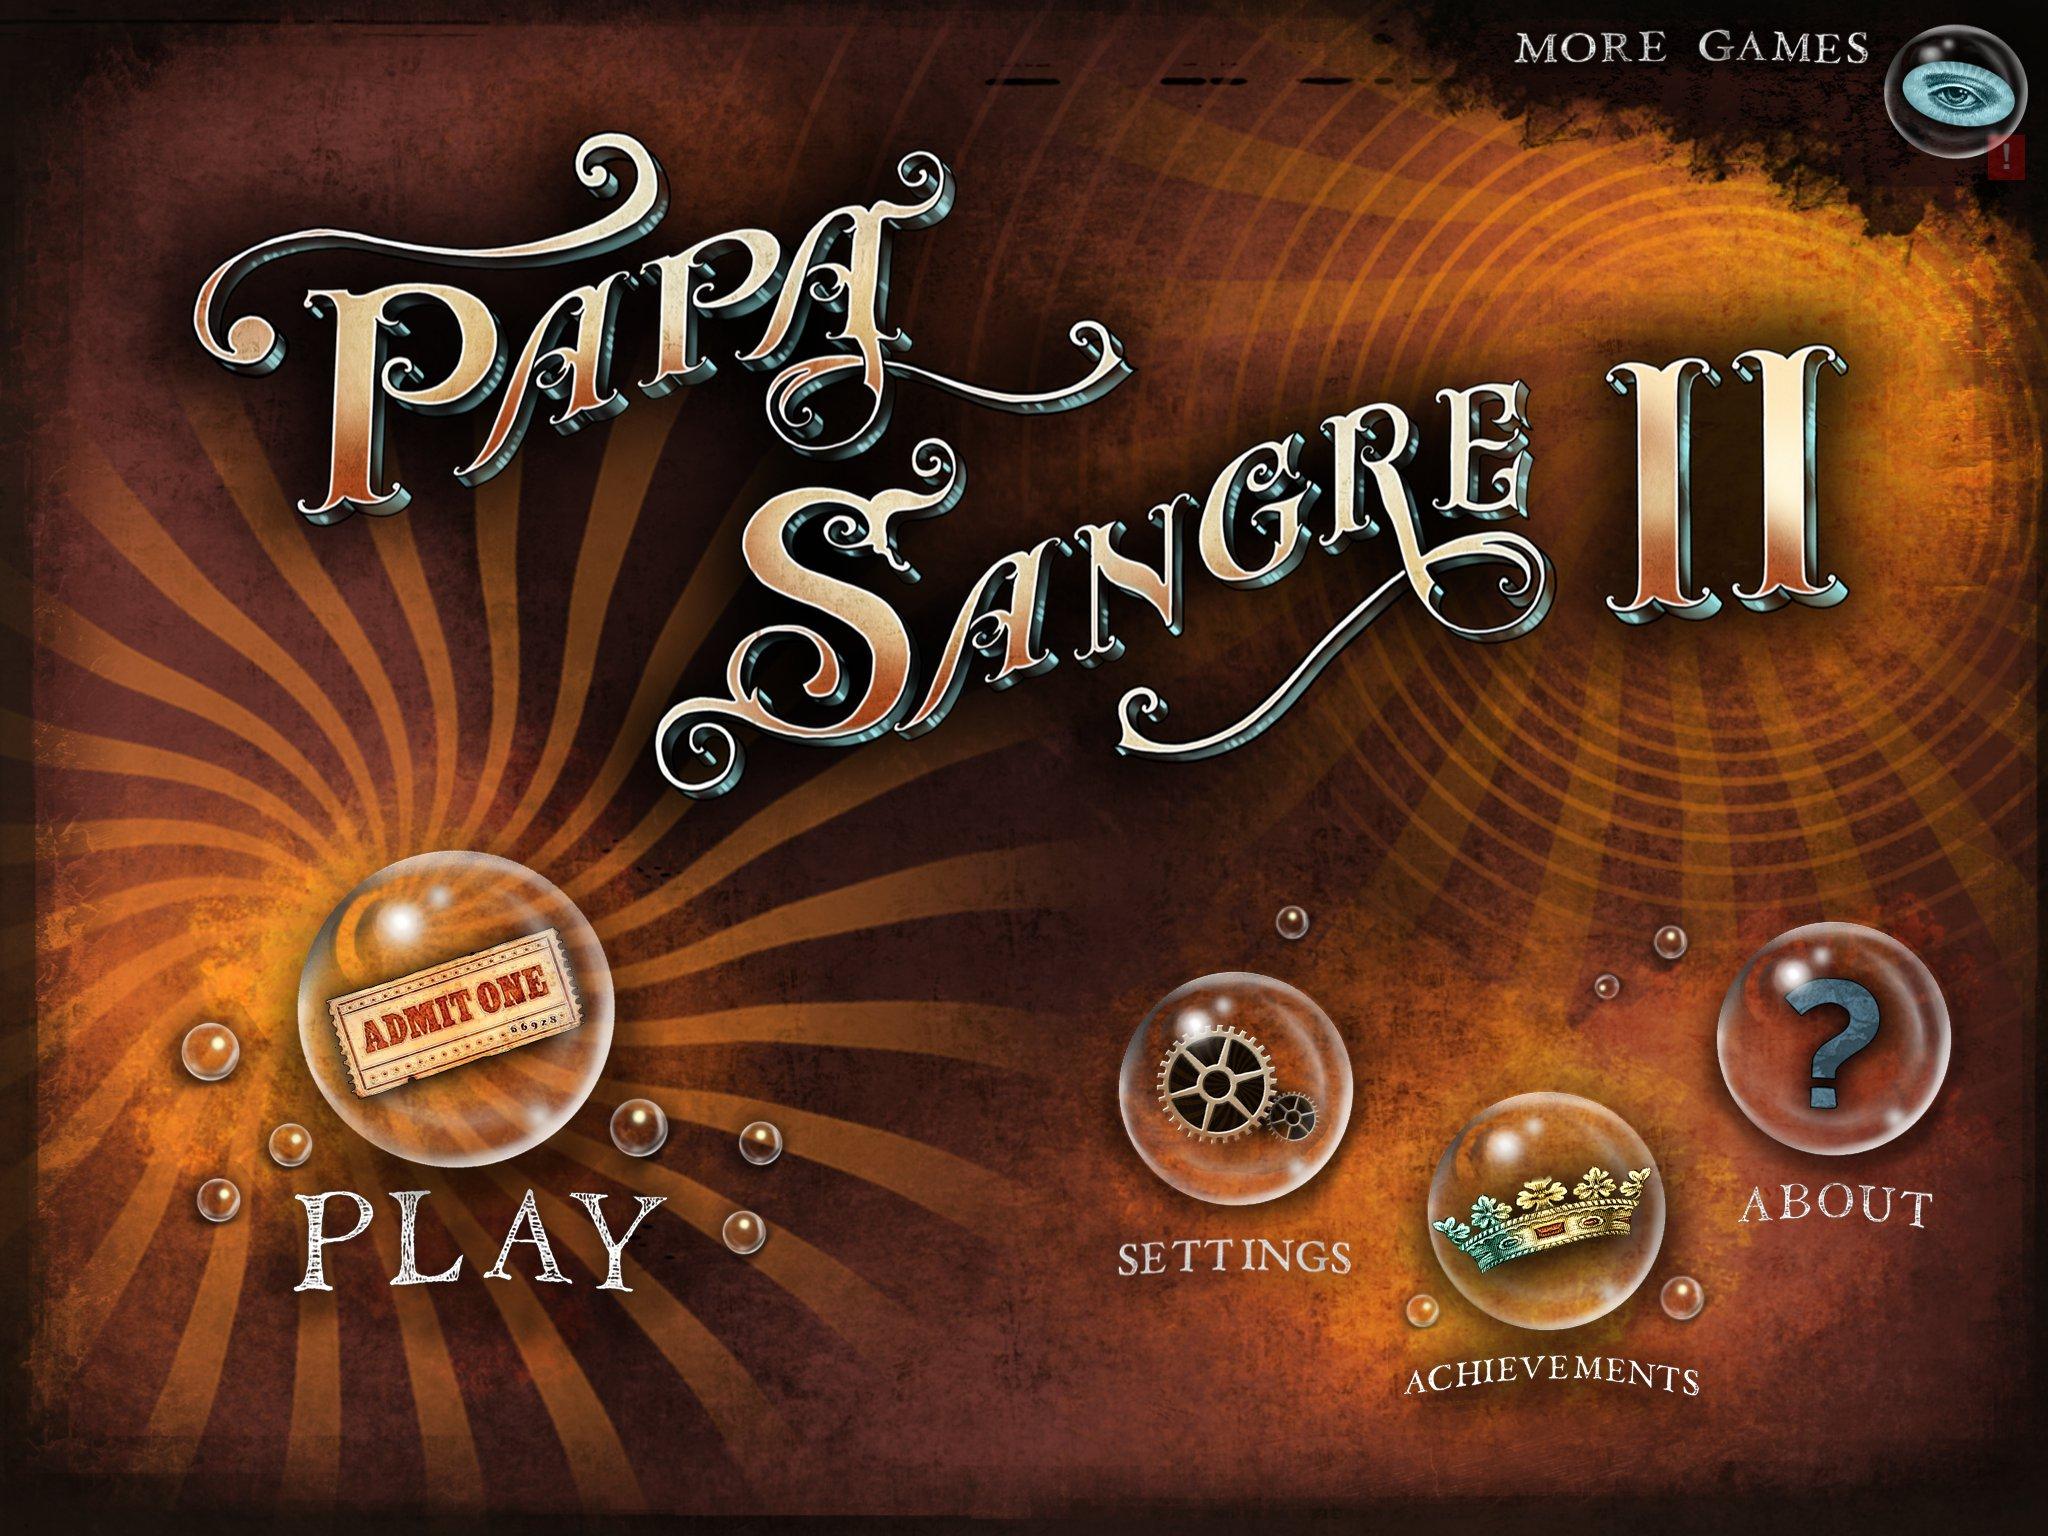 Spooky Gold Award-winning audio adventure Papa Sangre II is free on iOS for today only